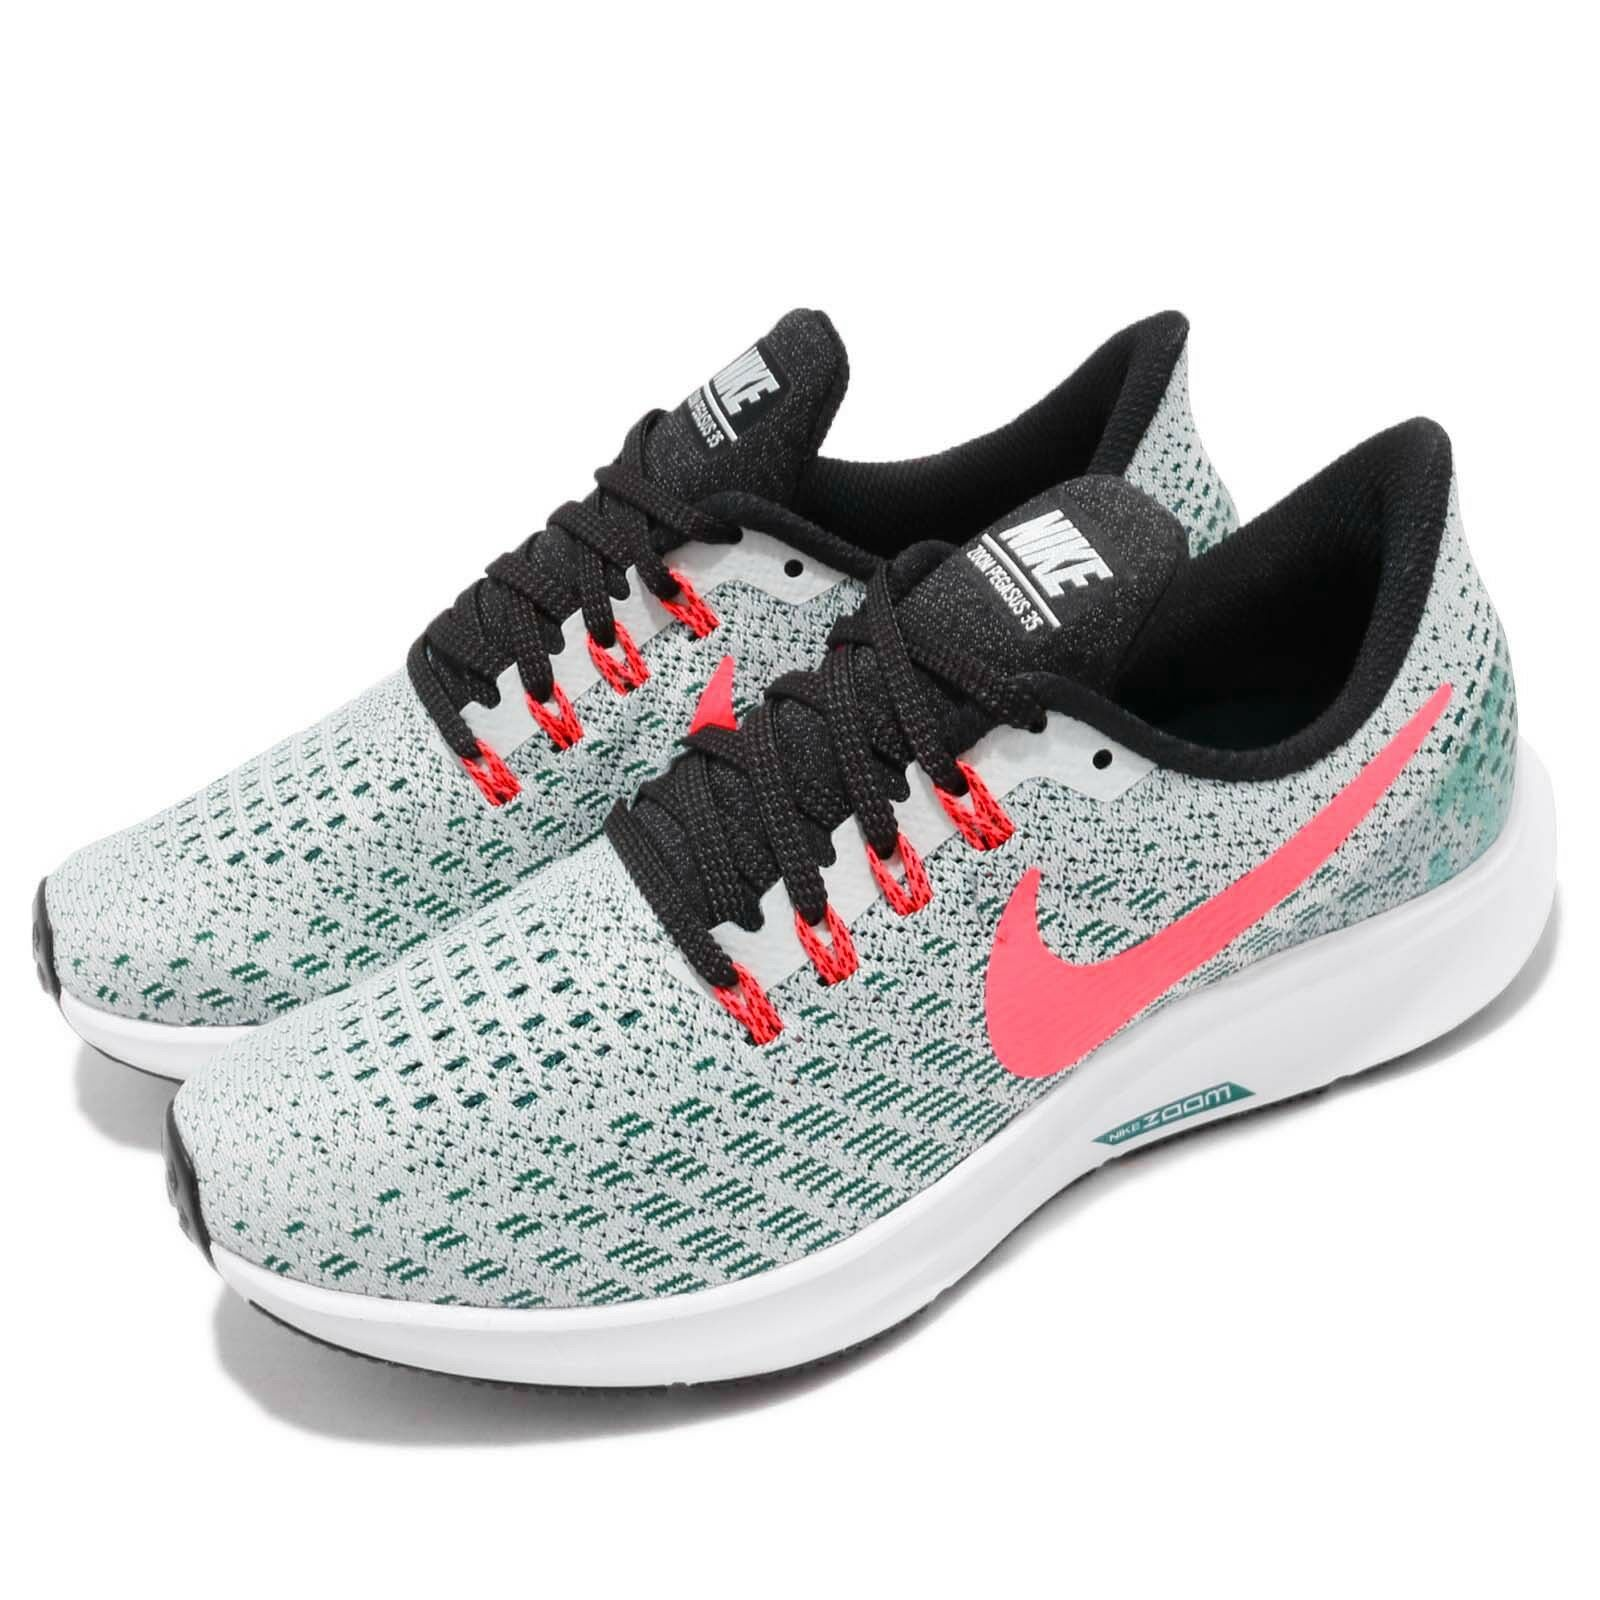 Nike Wmns Air Zoom Pegasus 35 Barely Gris Hot Punch femmes Chaussures 942855-009